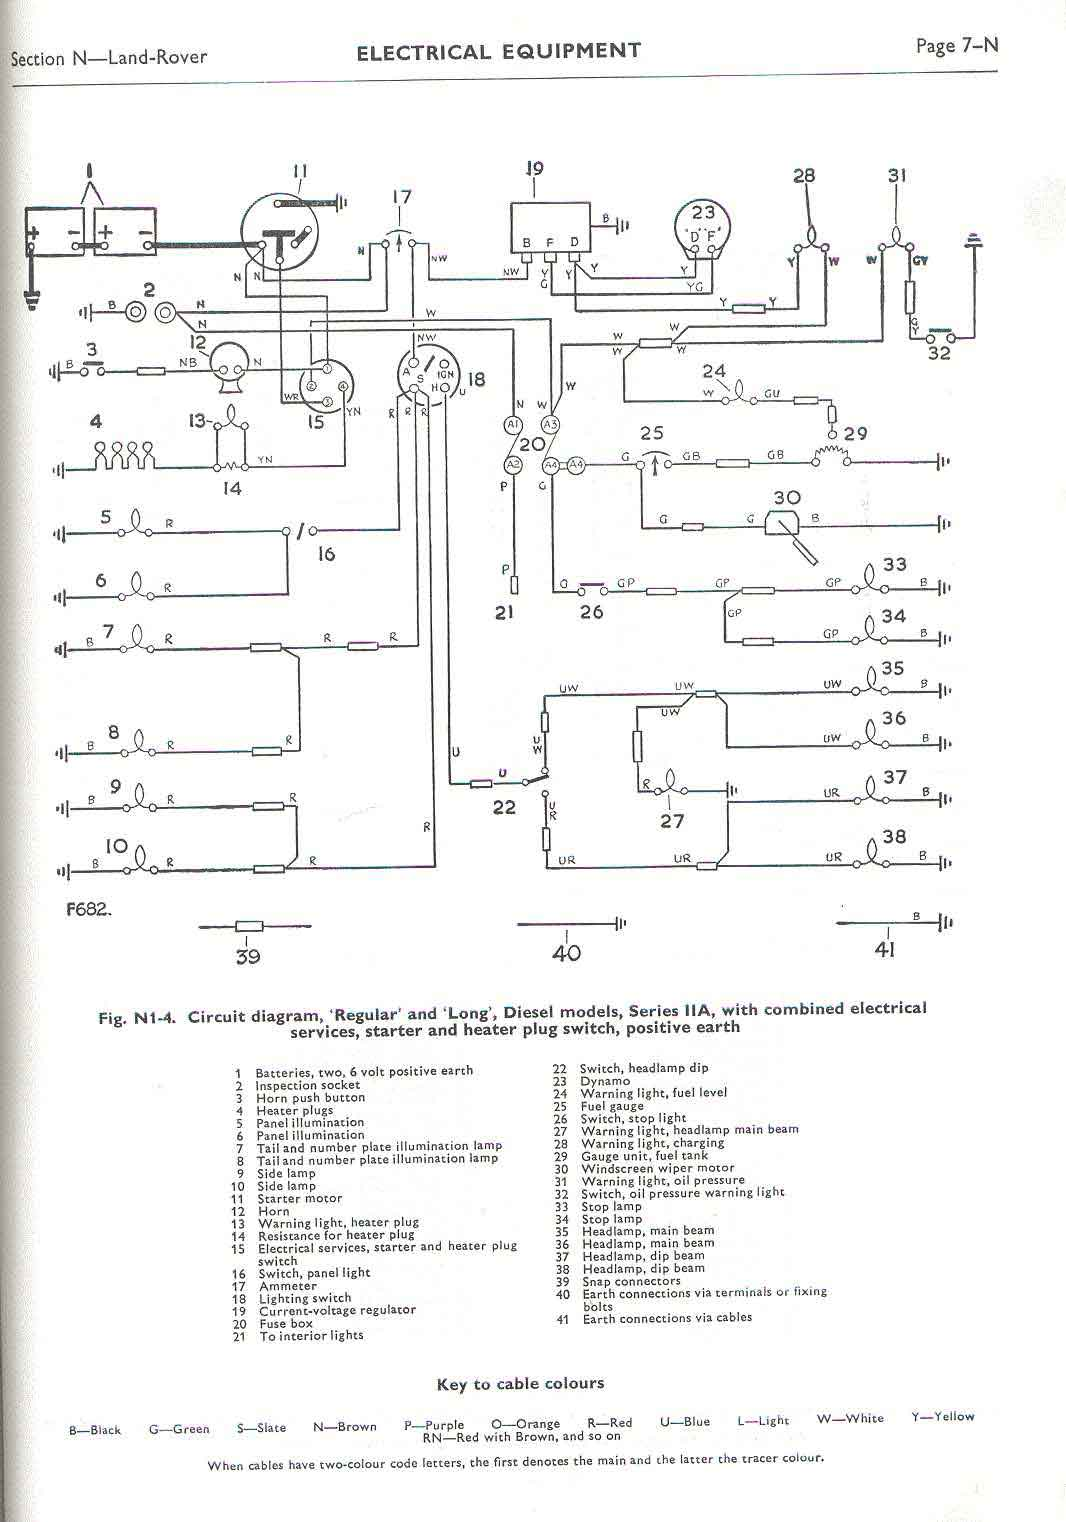 SIIA+VED2 land rover wiring diagram land rover radio wiring \u2022 free wiring p38 fuse box repair at creativeand.co